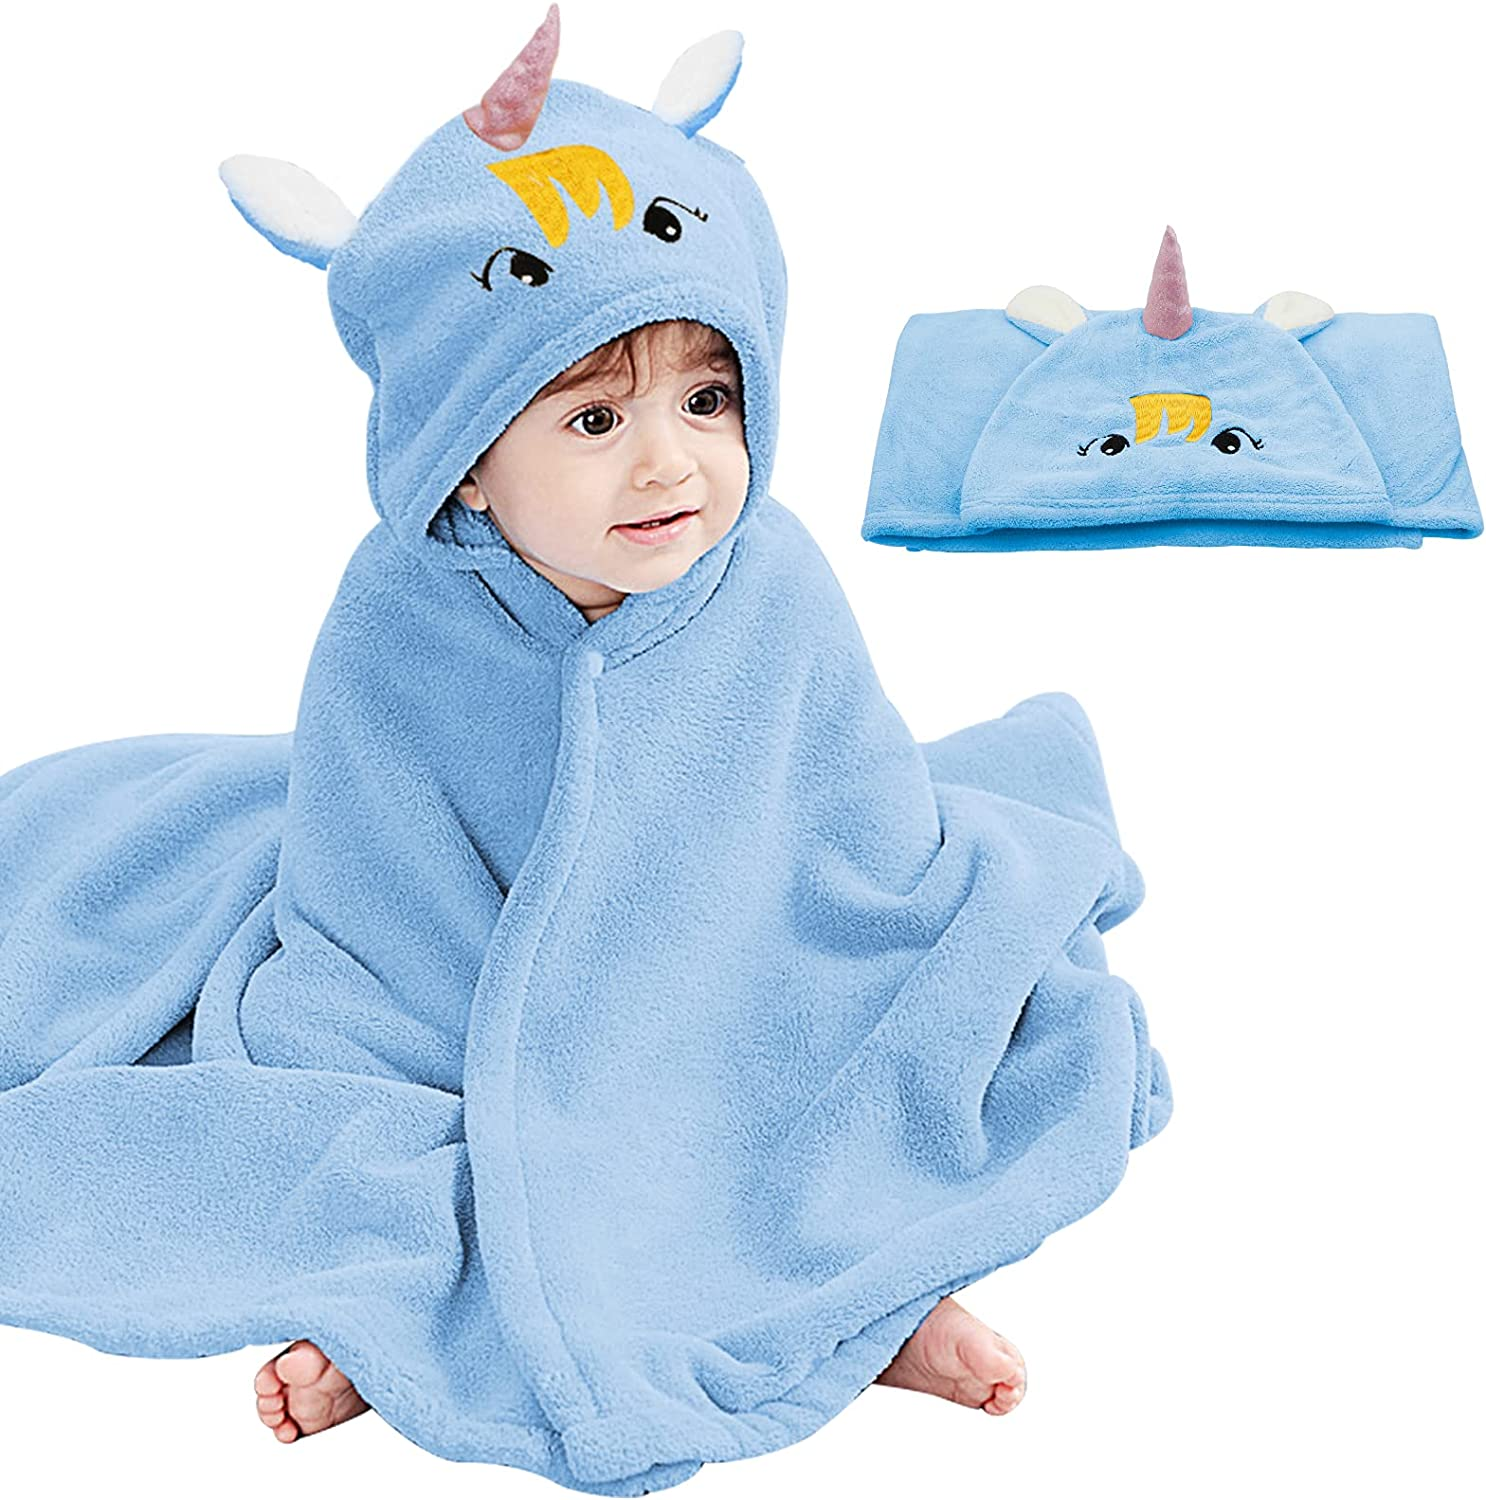 Baby Hooded Bath Towel Unicorn Design Ultra Soft Towel Highly Absorbent Bathrobe Blanket Toddlers Shower Gifts for Boys Girls-Extra Large 28